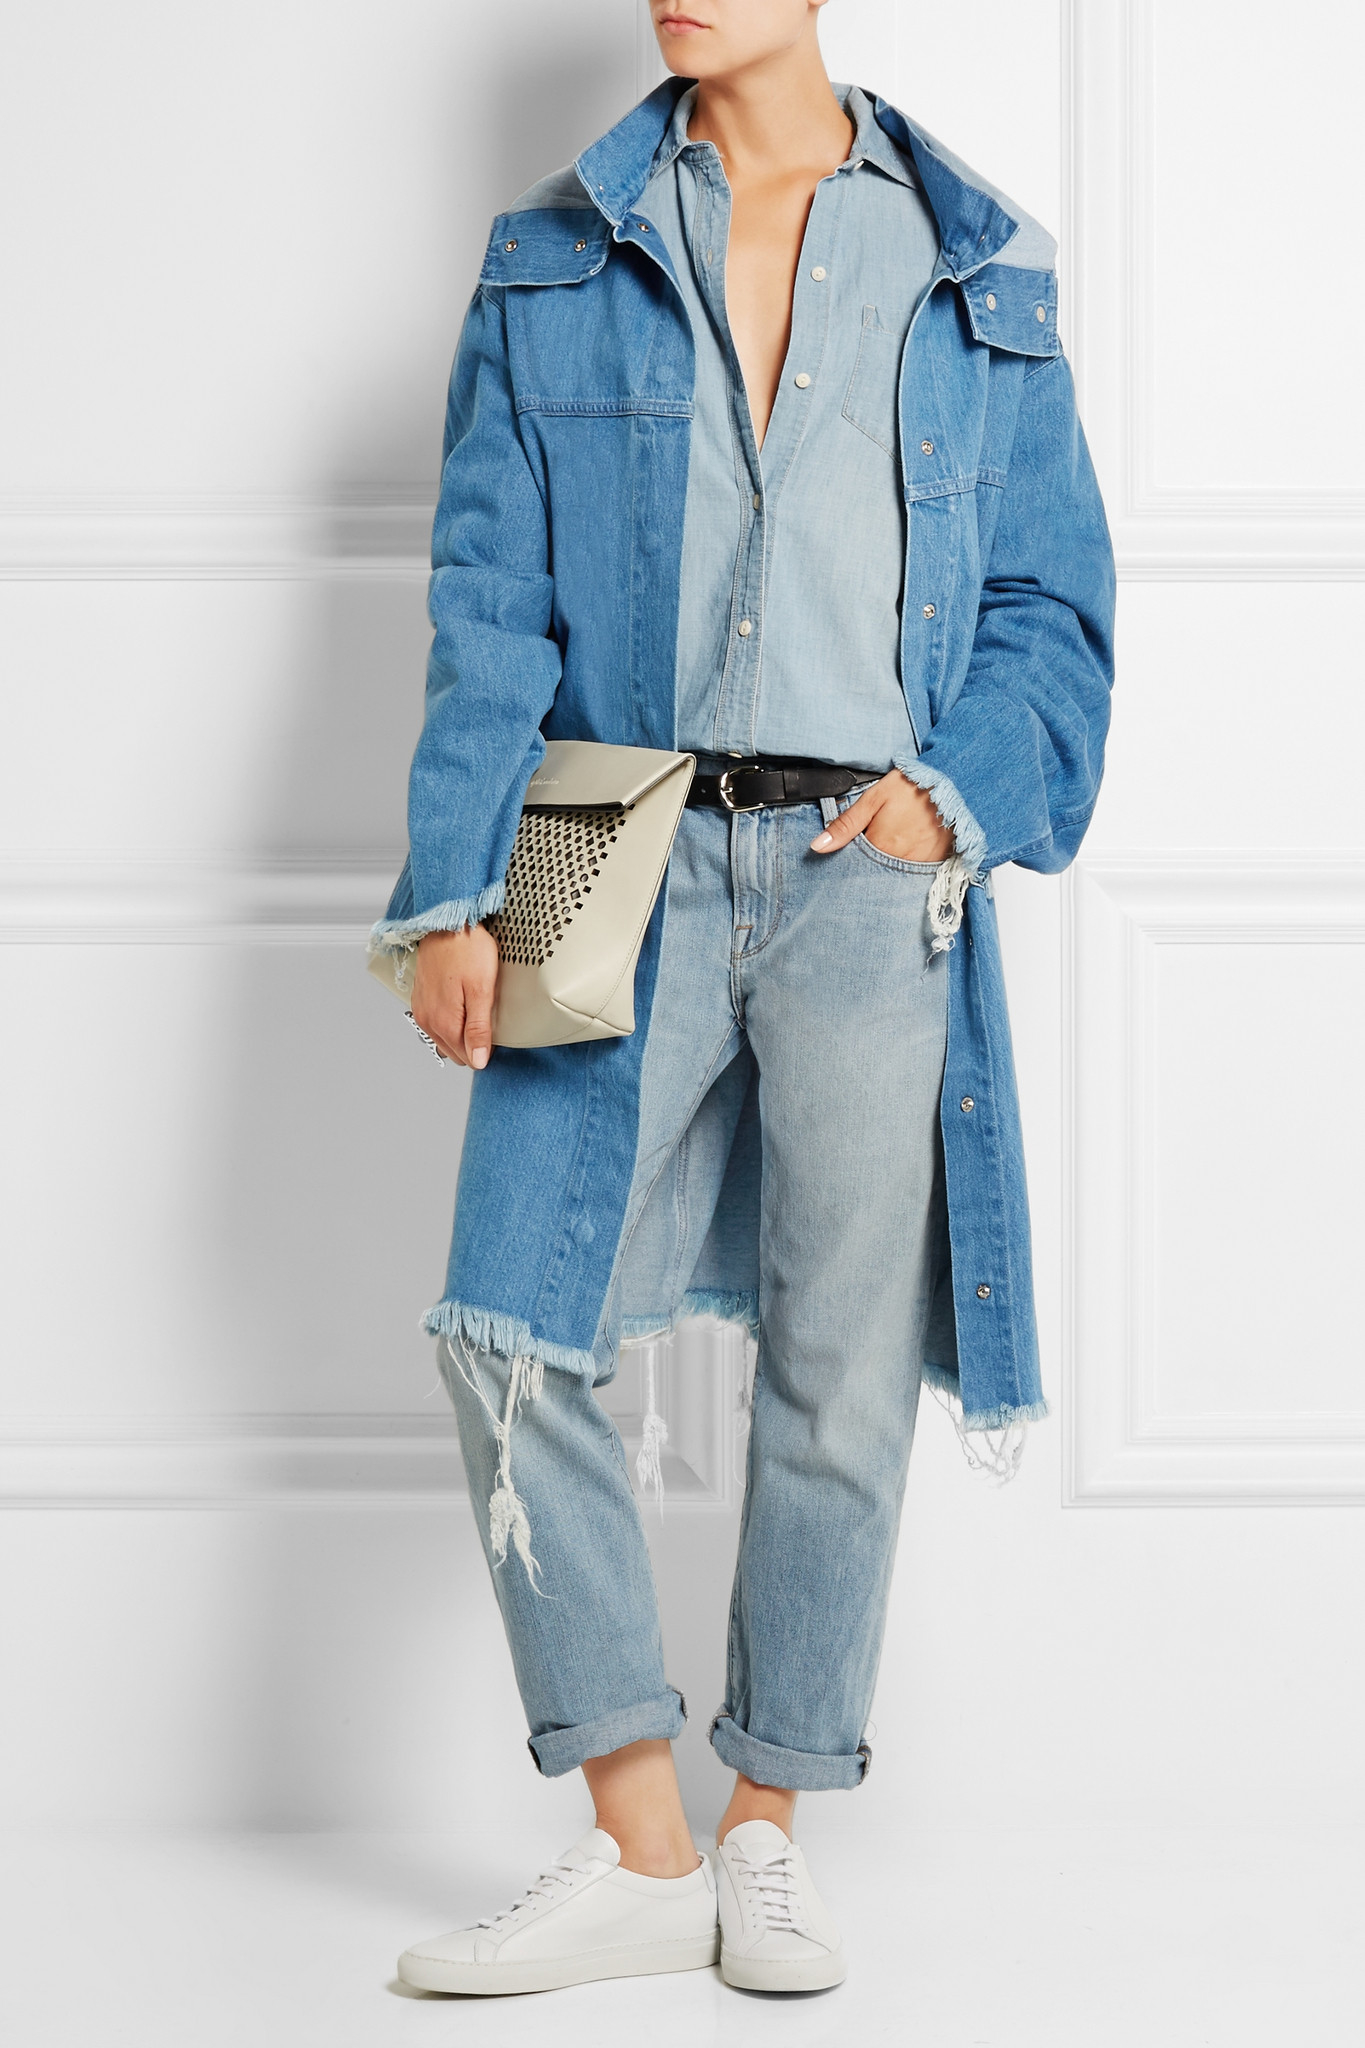 Vetements' denim jacket looks as though it's layered over a sweatshirt - it's actually fitted with a light-gray cotton-jersey drawstring hood. Cut for an oversized fit that's become a brand signature, it looks as much a rare vintage find as a cult streetwear piece, in fact, no two appliqués are the same.